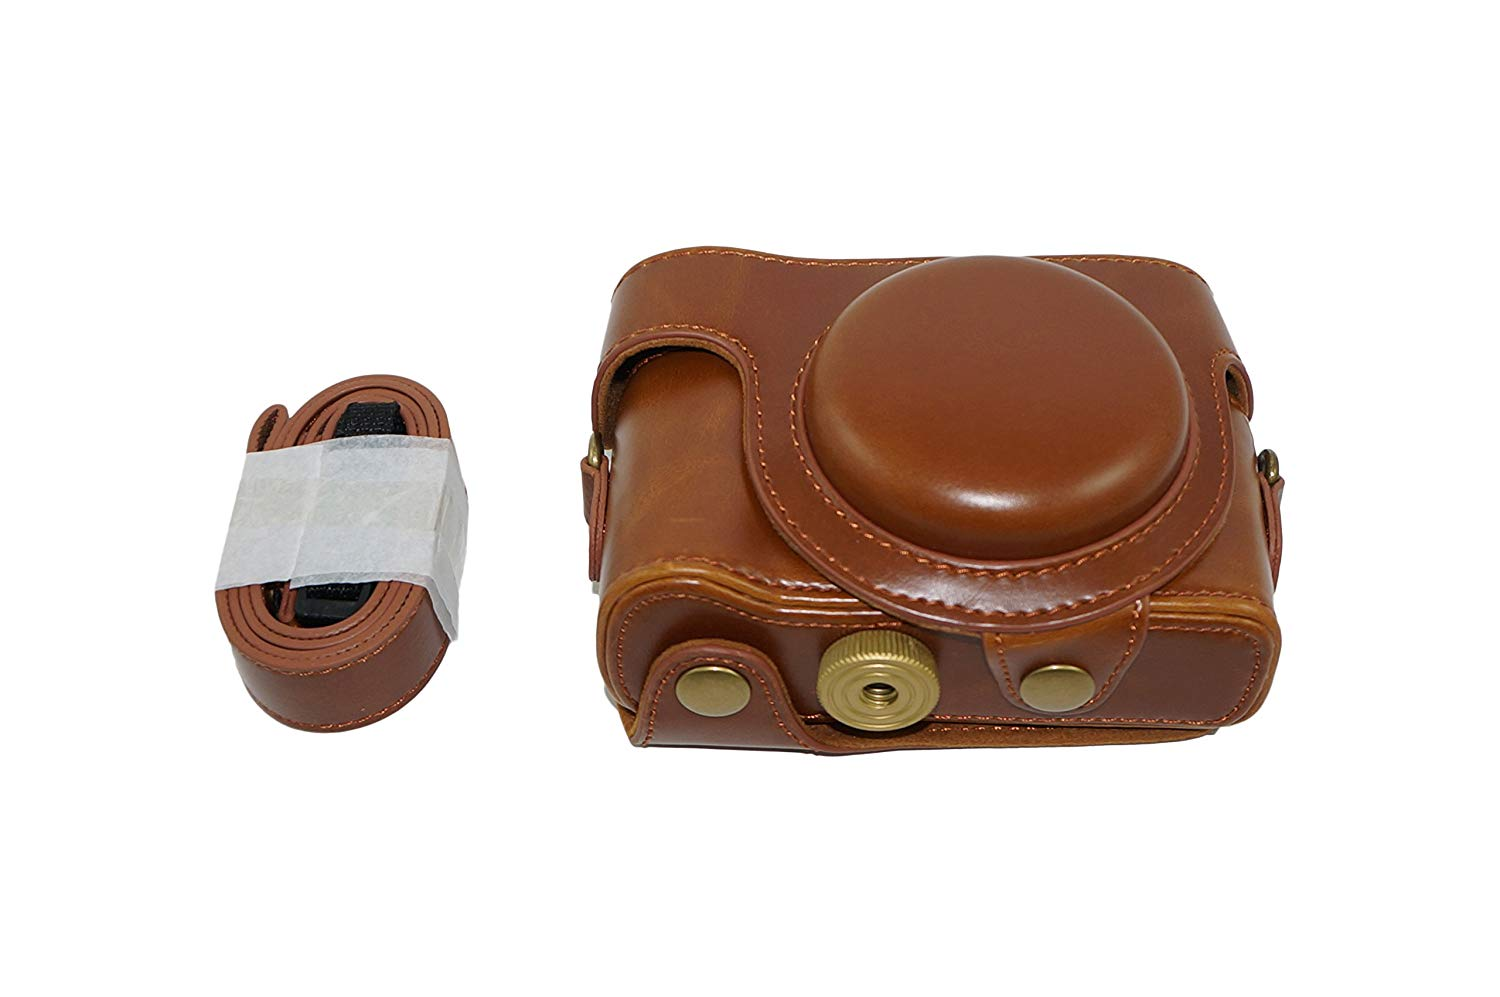 Protective PU Leather Camera Case Bag with Tripod Design Compatible For Sony Cyber-shot DSC-HX60V HX60V with Shoulder Neck Strap Belt Brown